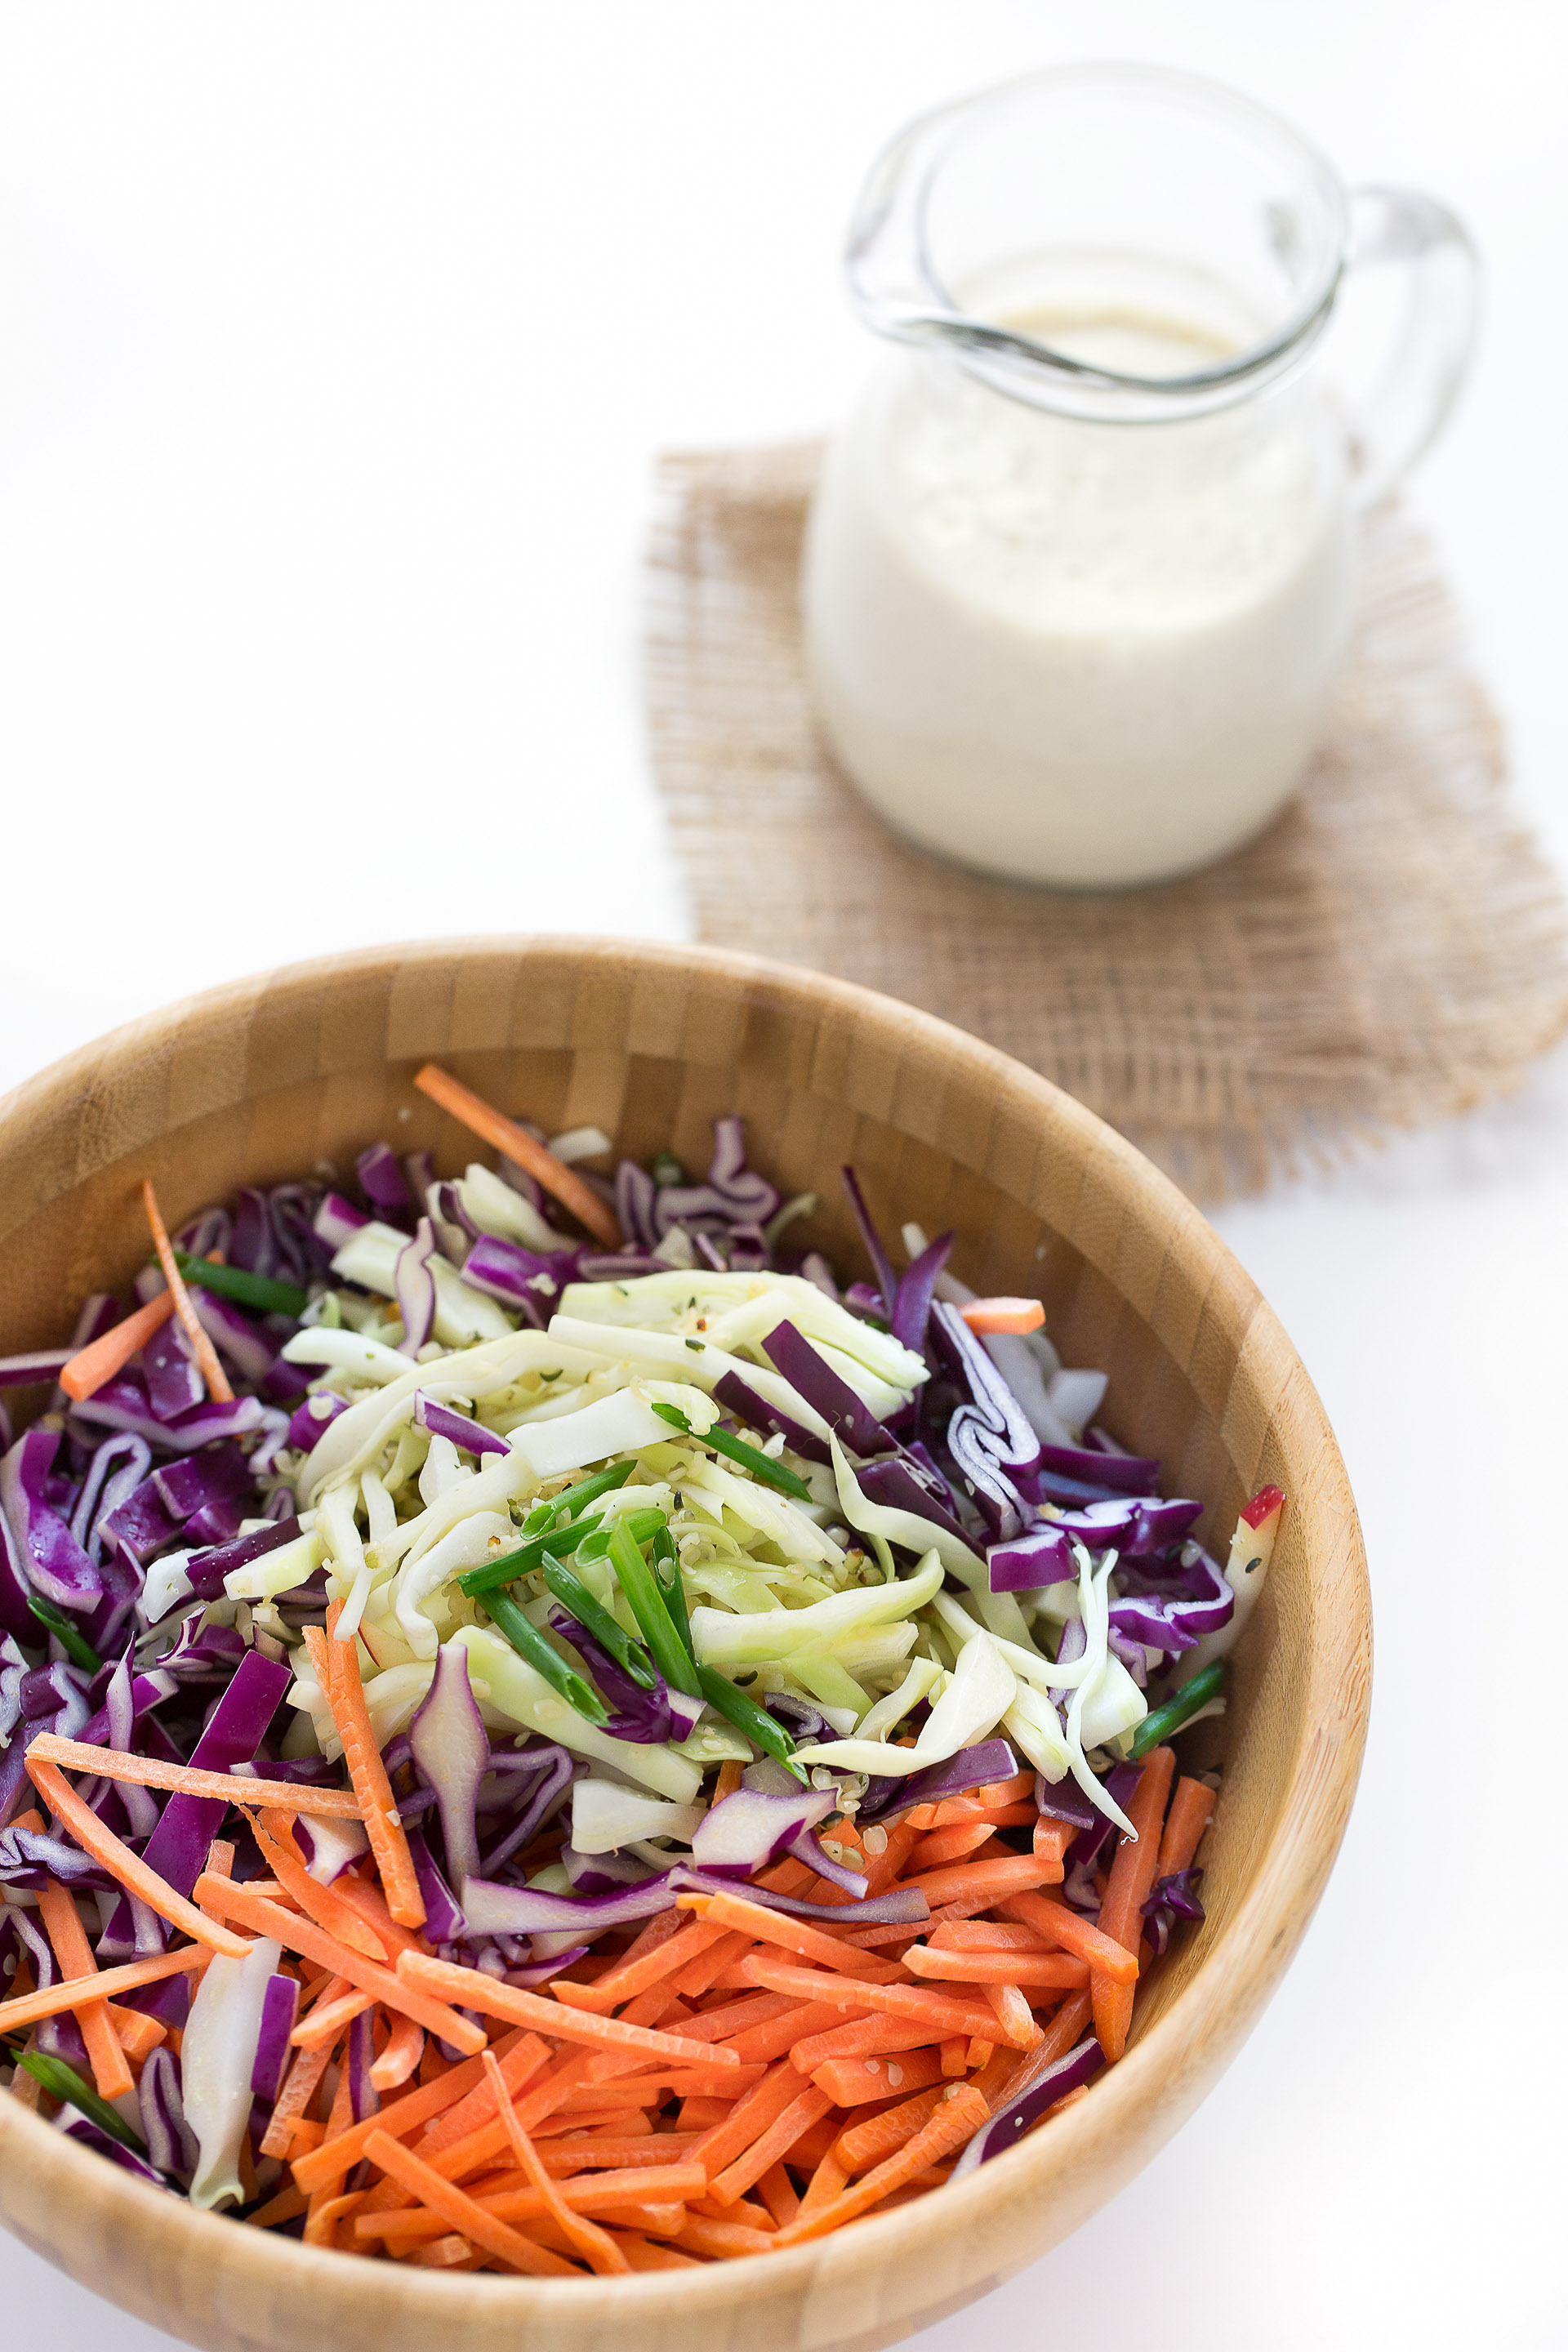 vegan coleslaw recipe with yogurt dressing - ricetta coleslaw light con dressing allo yogurt - insalata cavolo cappuccio e carote